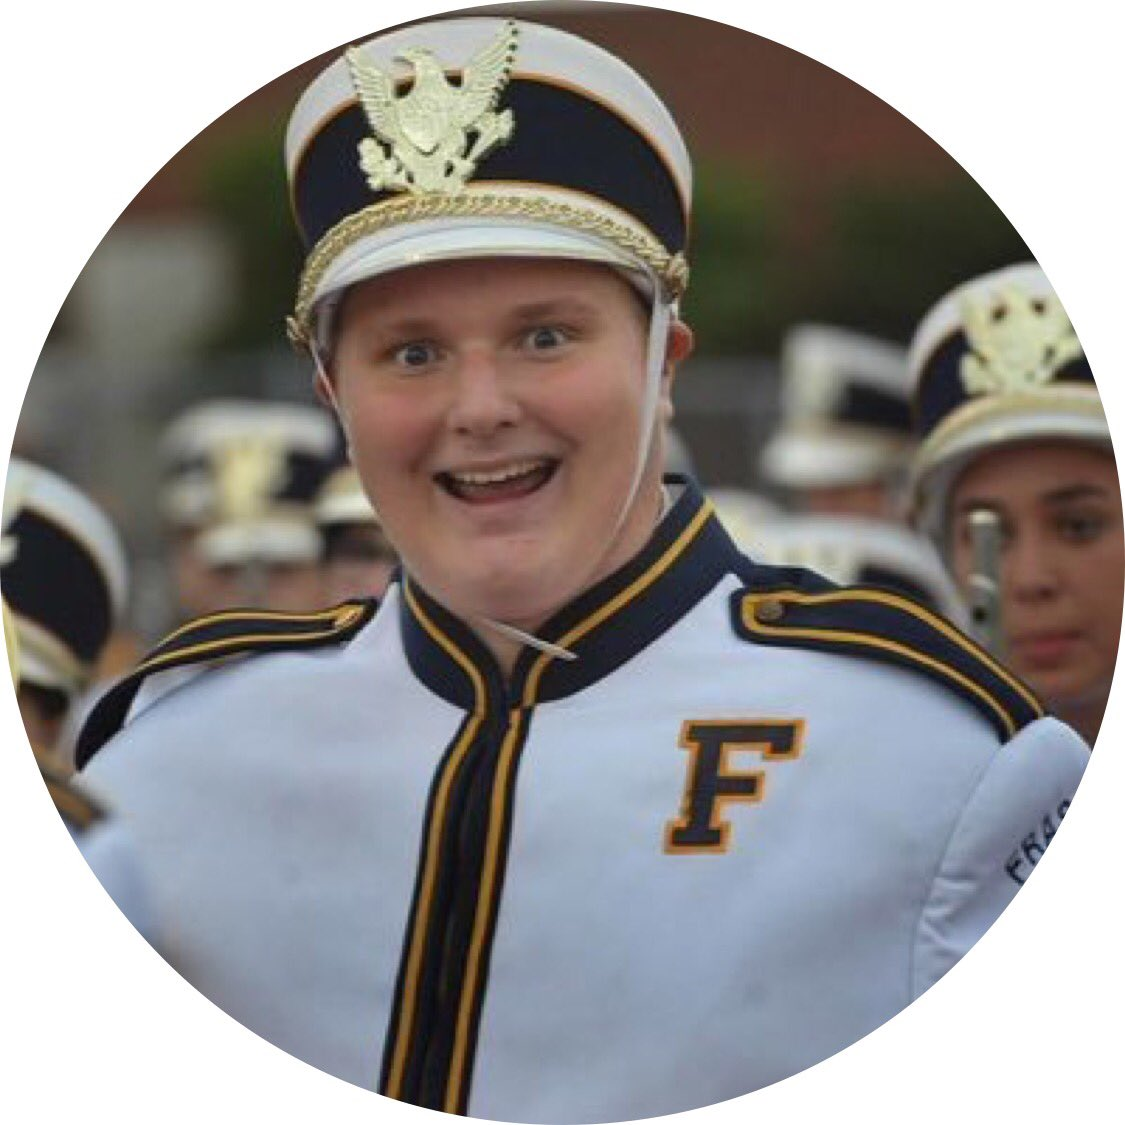 1000 retreats and I&#39;ll wear my marching uniform to prom. #prom #RetweeetPlease<br>http://pic.twitter.com/i7KOxIrwHF